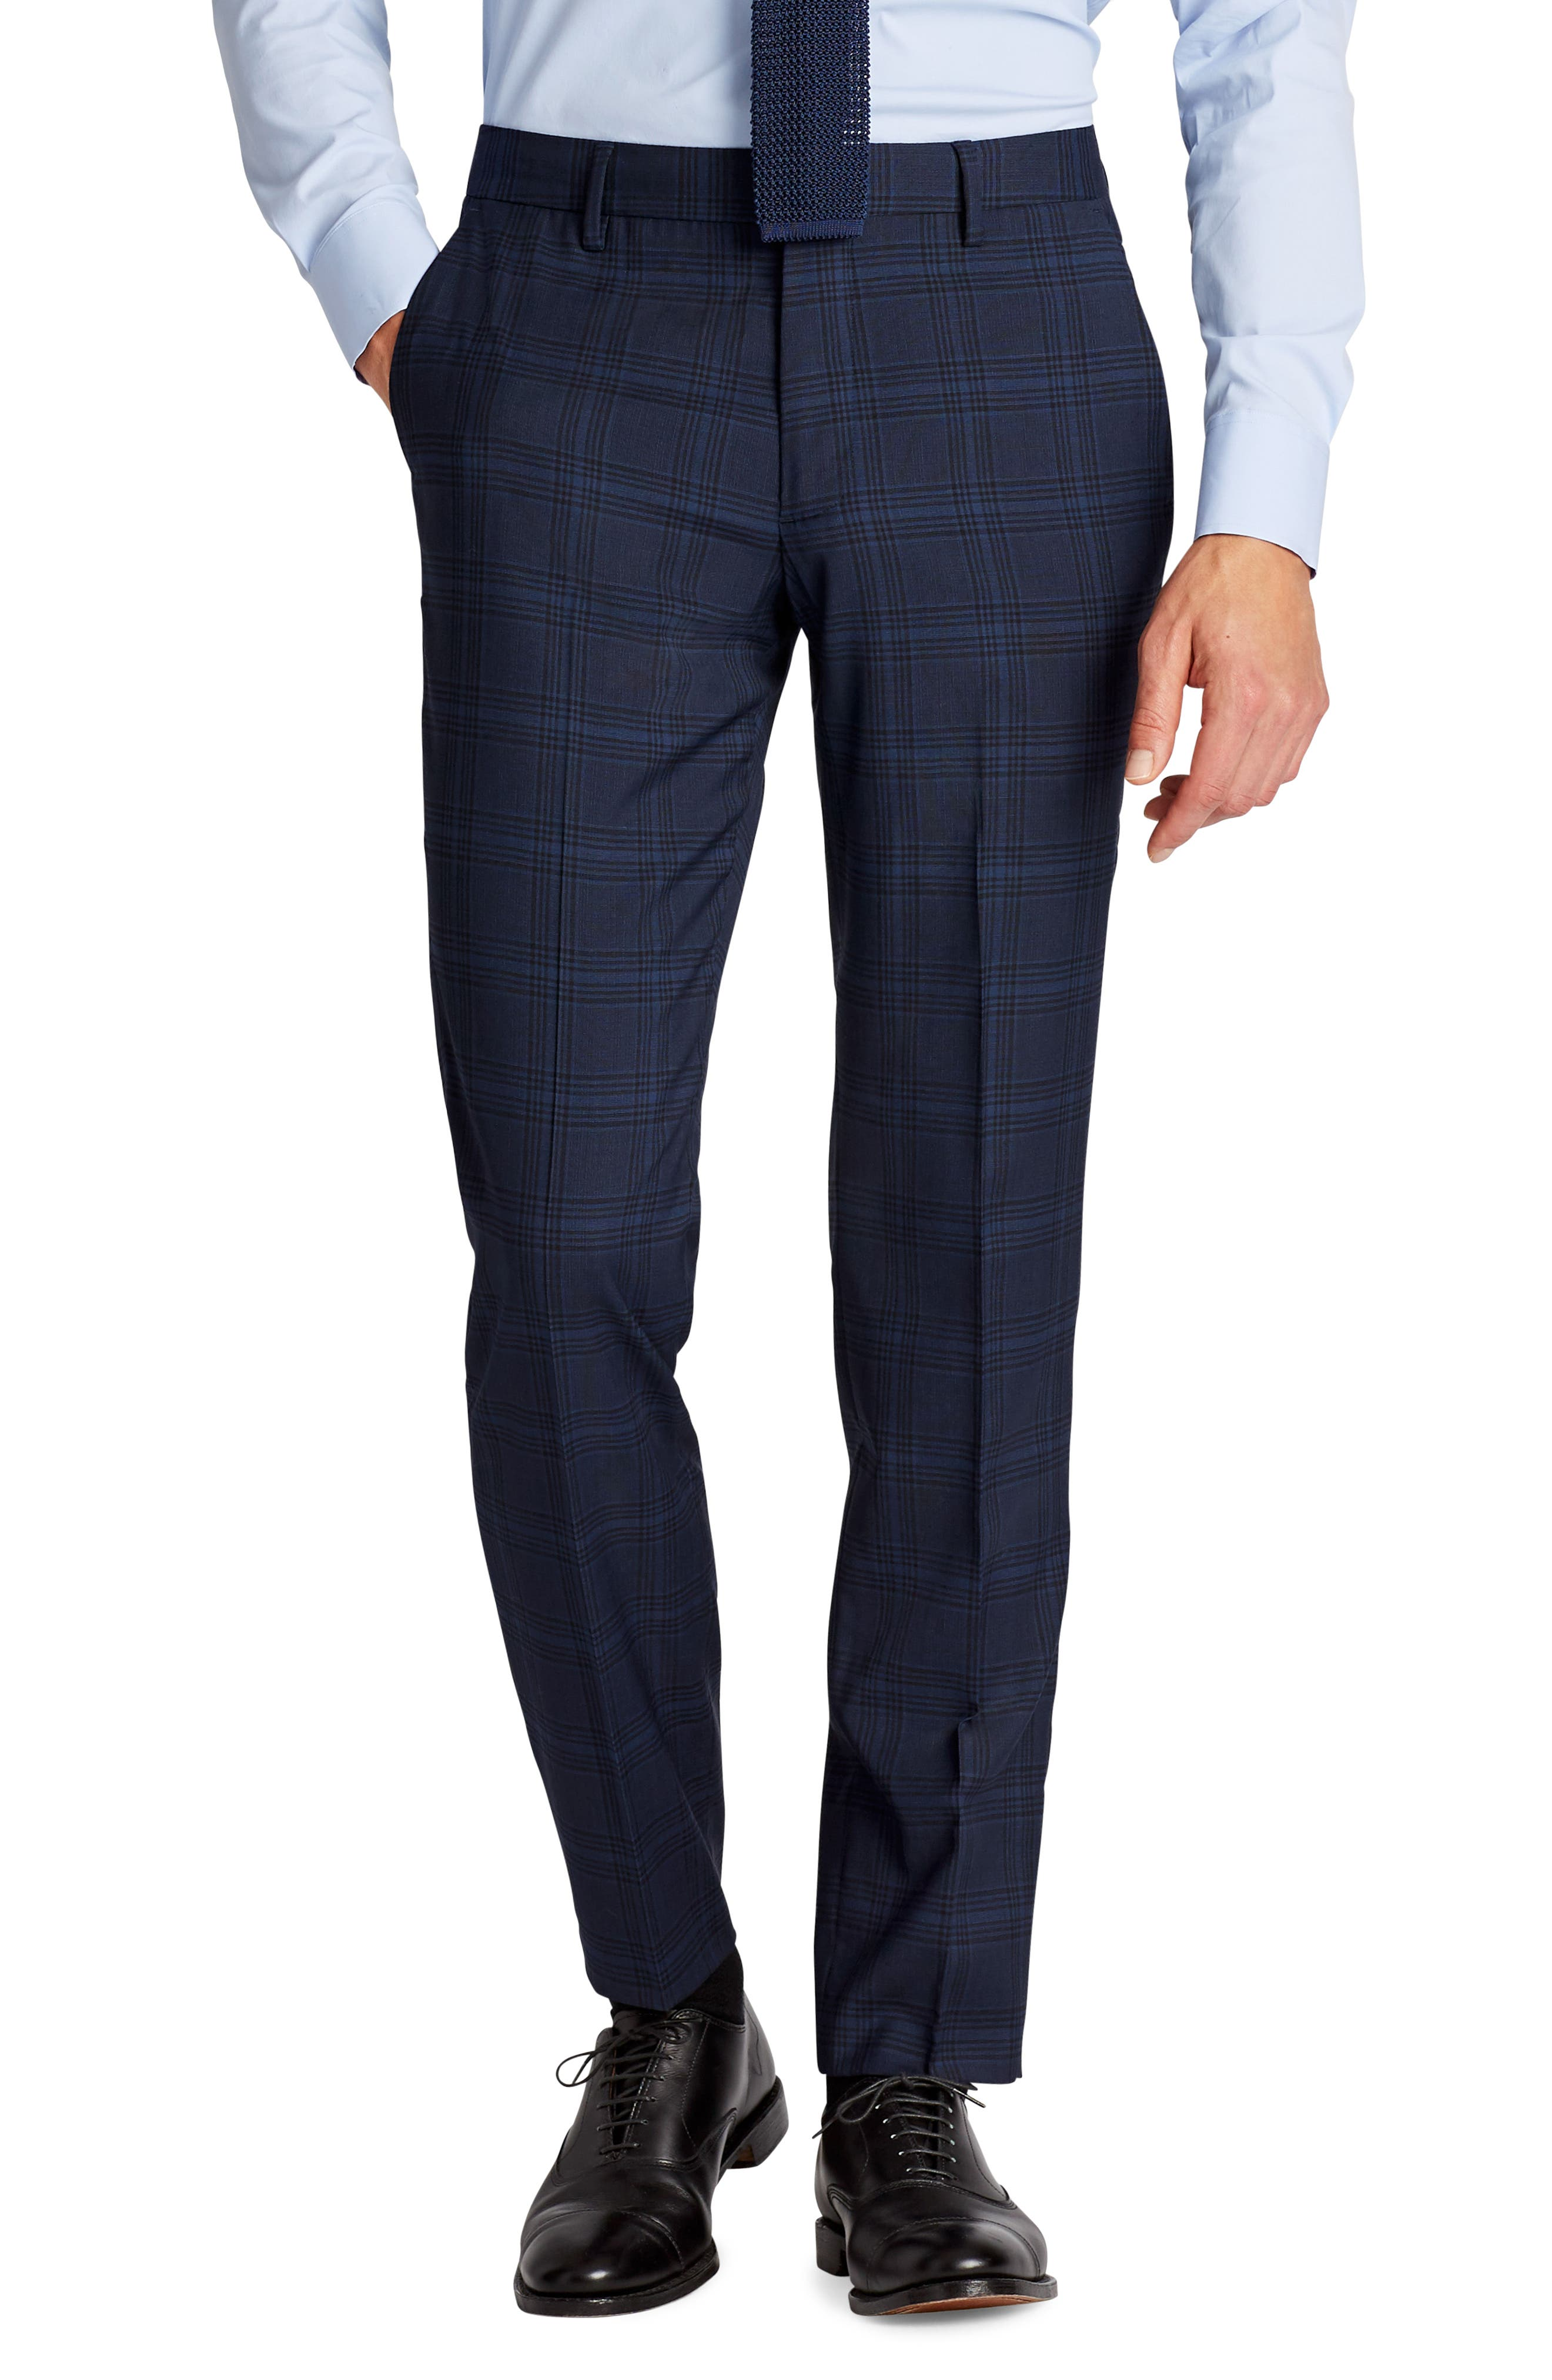 Jetsetter Flat Front Stretch Plaid Wool Blend Trousers,                         Main,                         color, 400